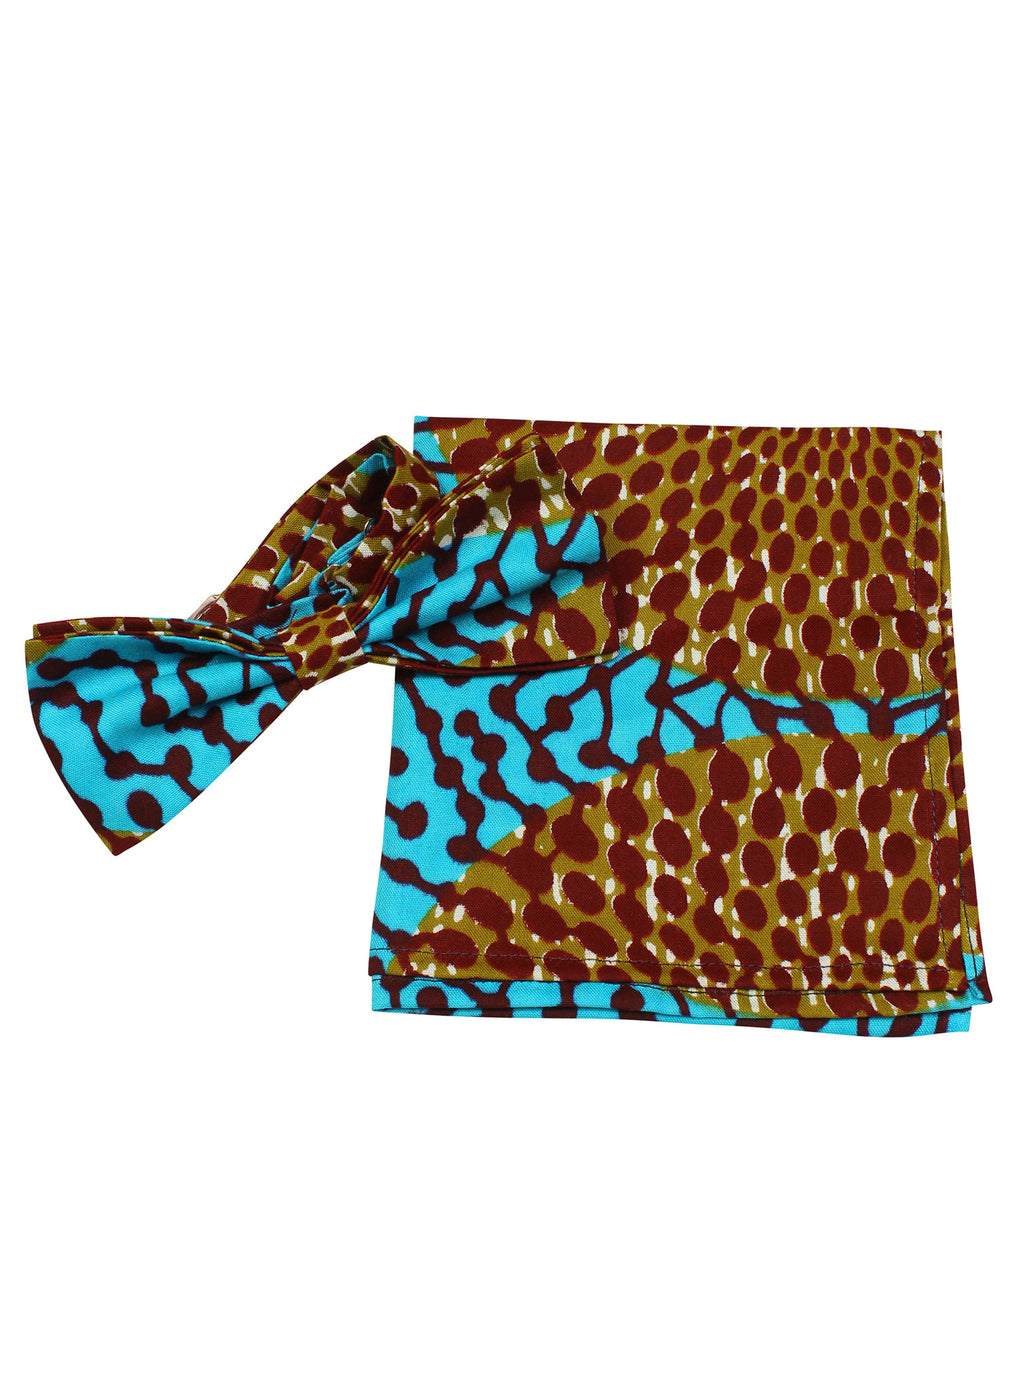 Printed Bow Tie & Pocket Square-Nsubra - OHEMA OHENE AFRICAN INSPIRED FASHION  - 1